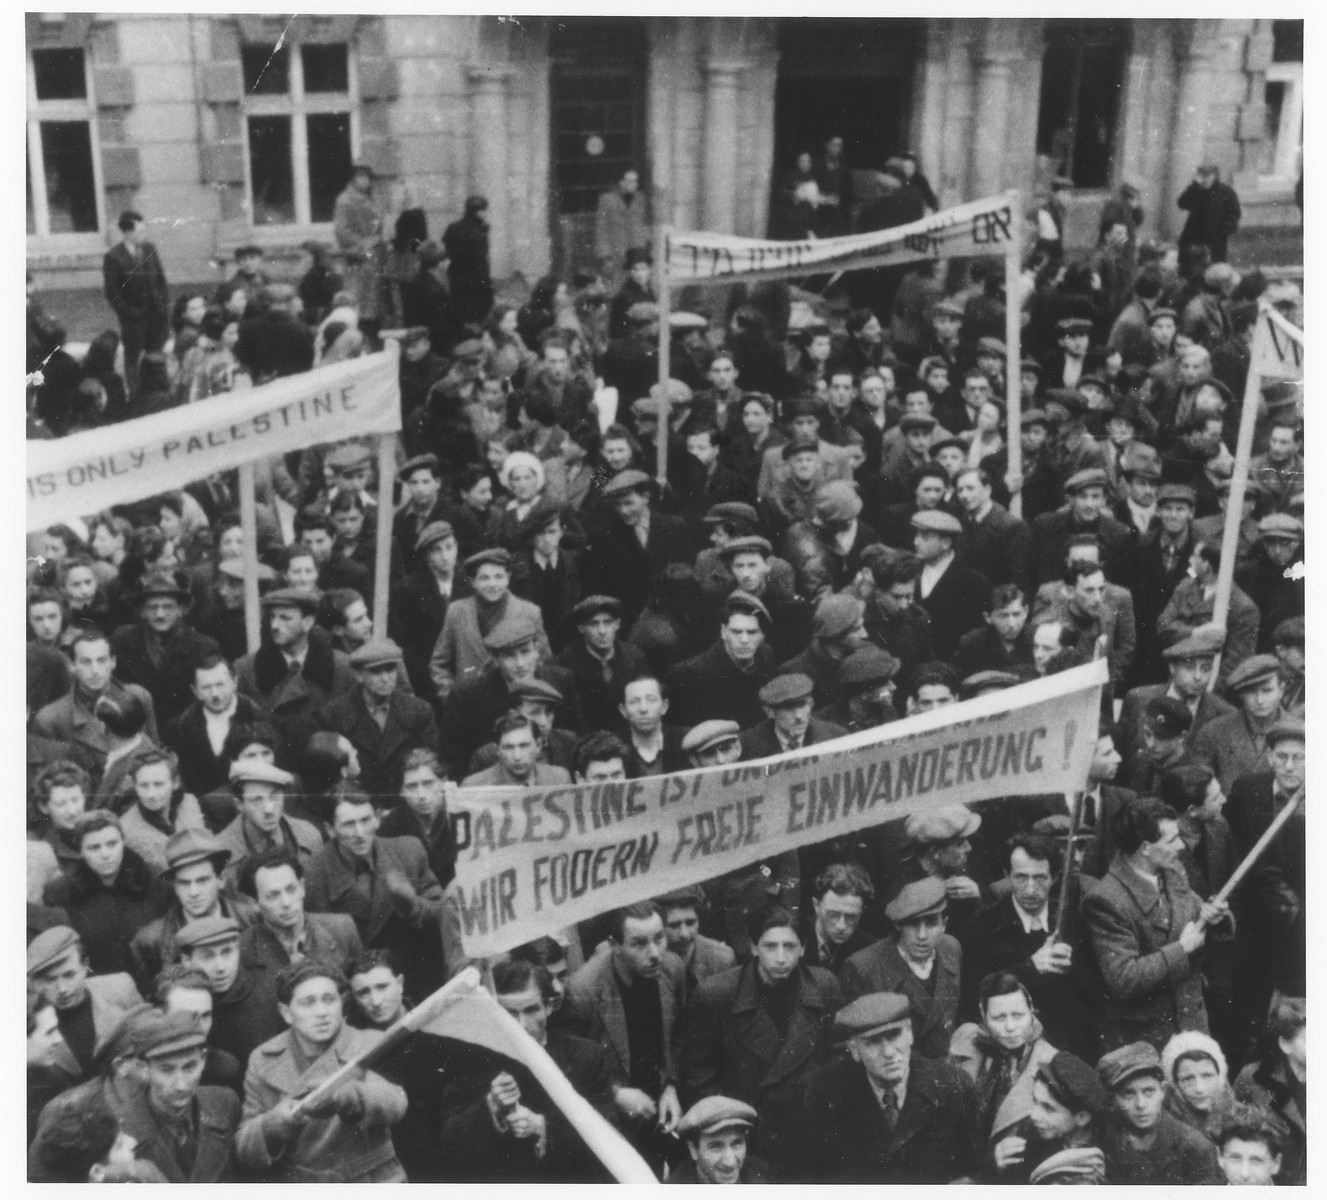 Jewish DPs protest against British immigration policy in Palestine at the Bad Gastein displaced persons camp.